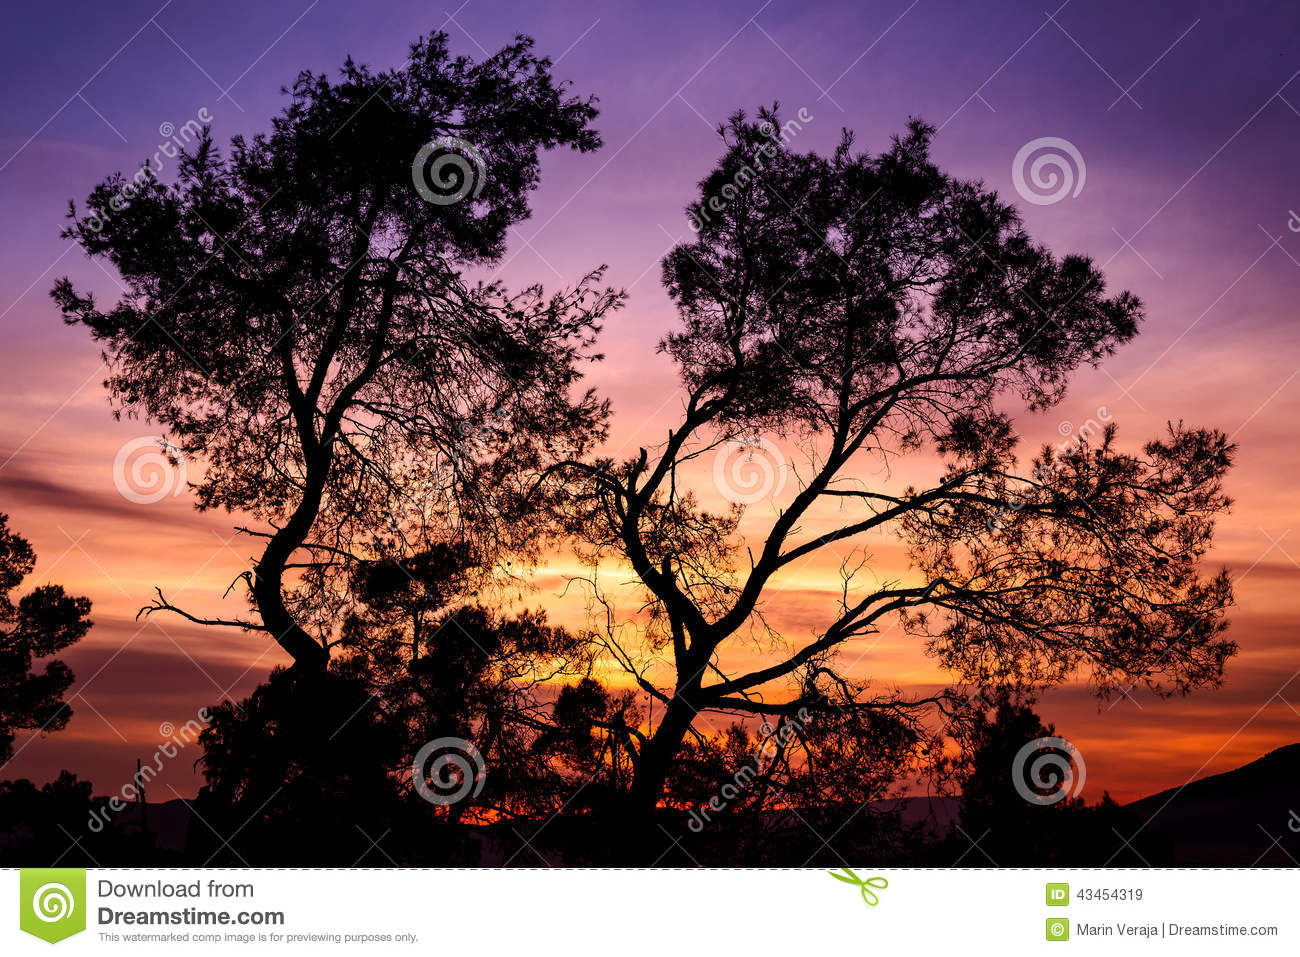 Stock Photo: Silhouette of tree with colorful sky in the backgroun